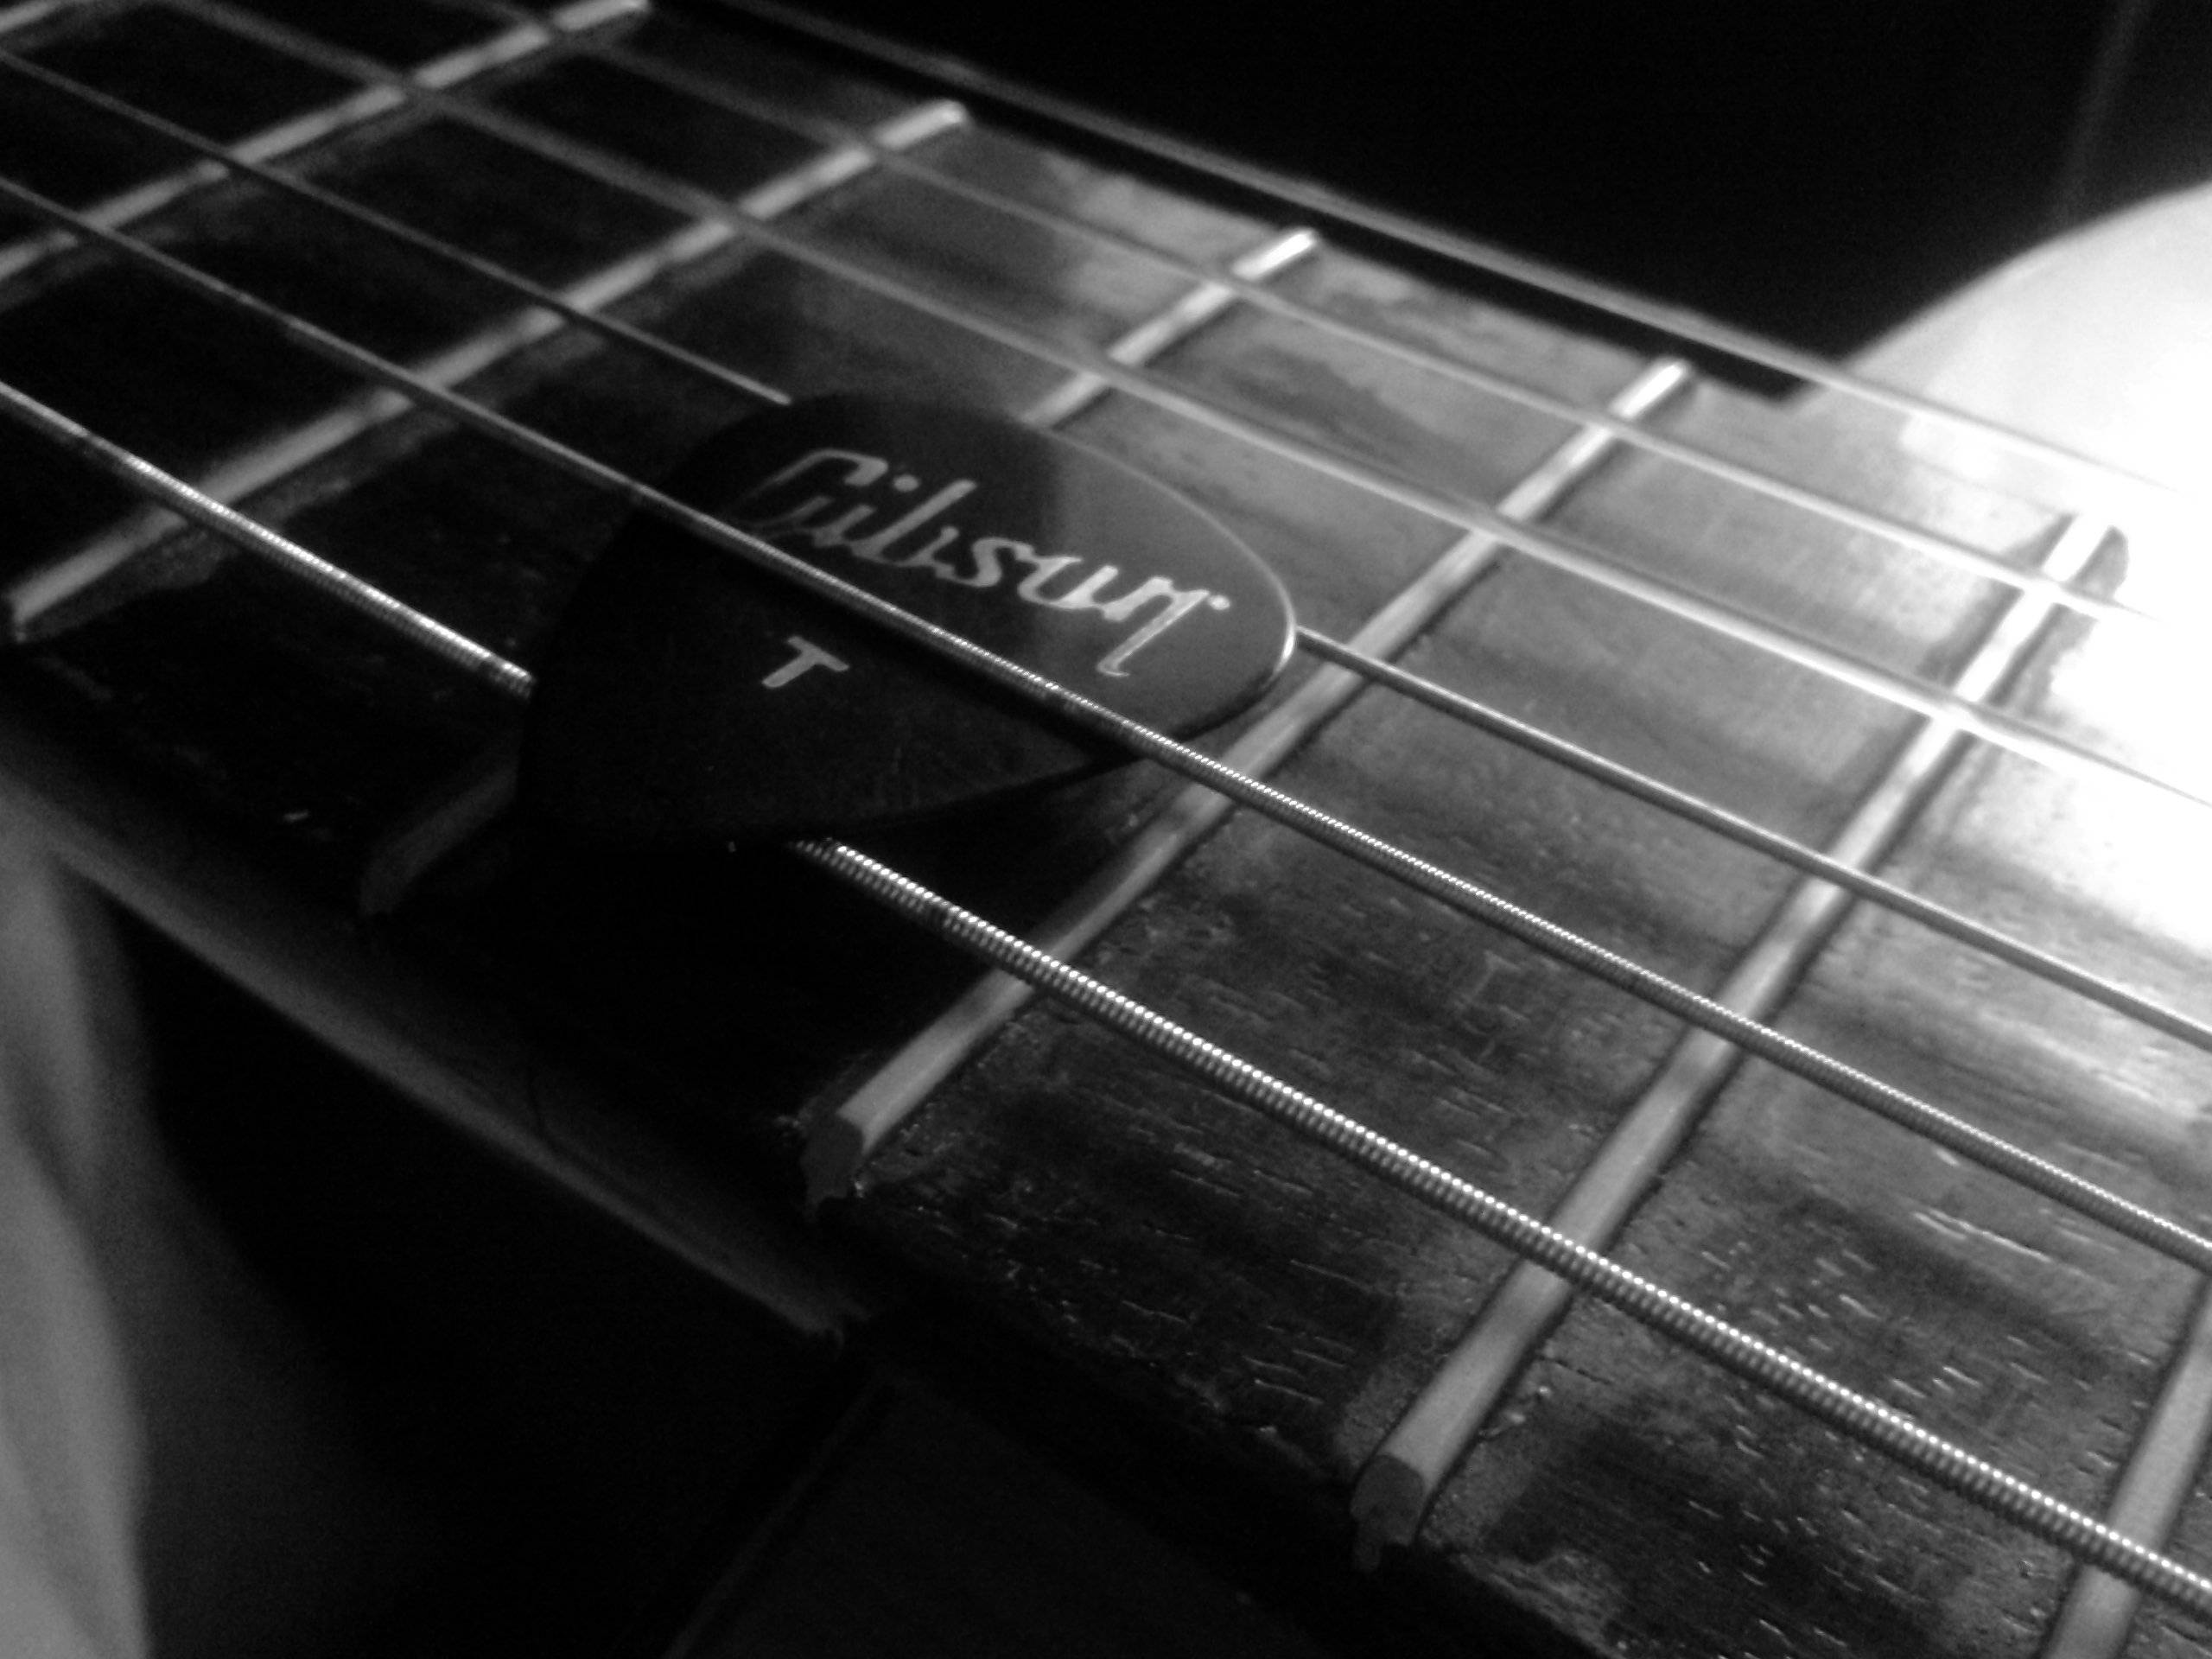 gibson-wallpaper-hd-2.jpg